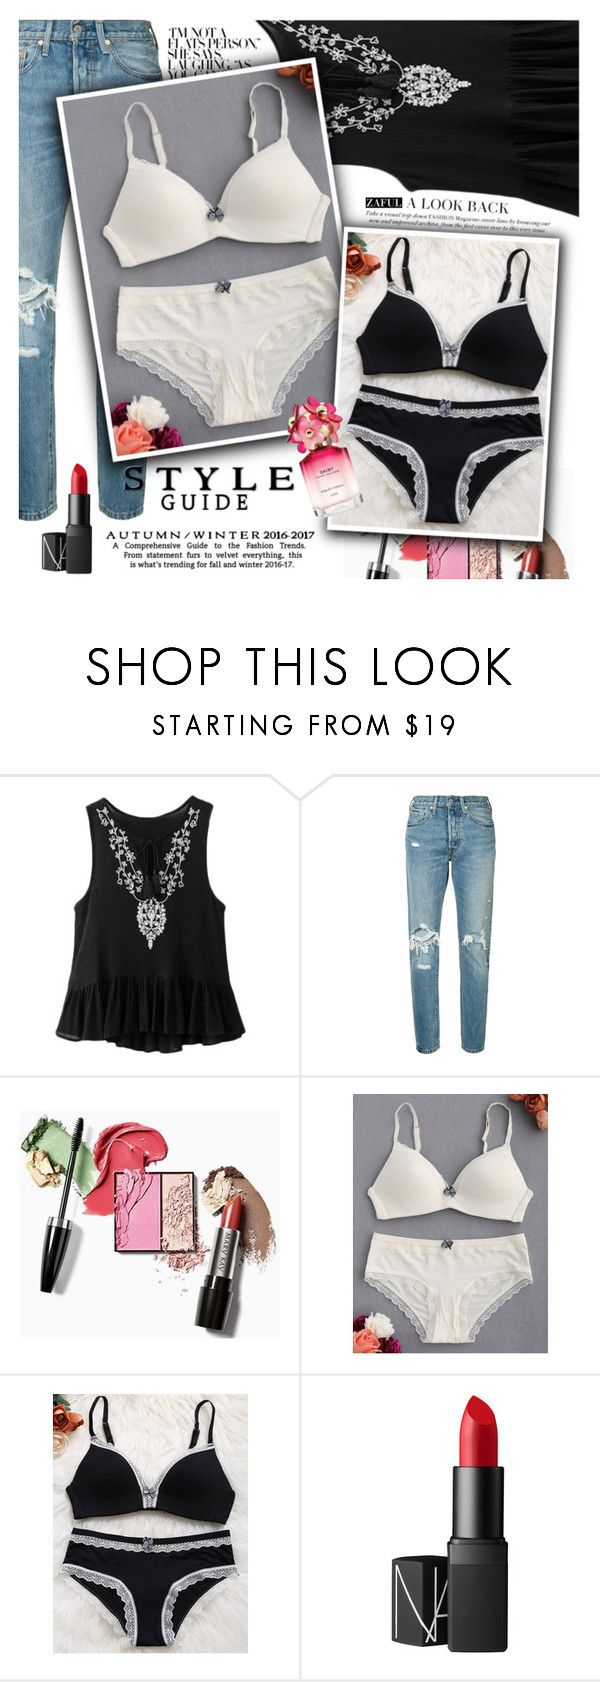 """Casual friday"" by vanjazivadinovic ❤ liked on Polyvore featuring Levi's, NARS Cosmetics, Marc Jacobs, polyvoreeditorial and zaful"